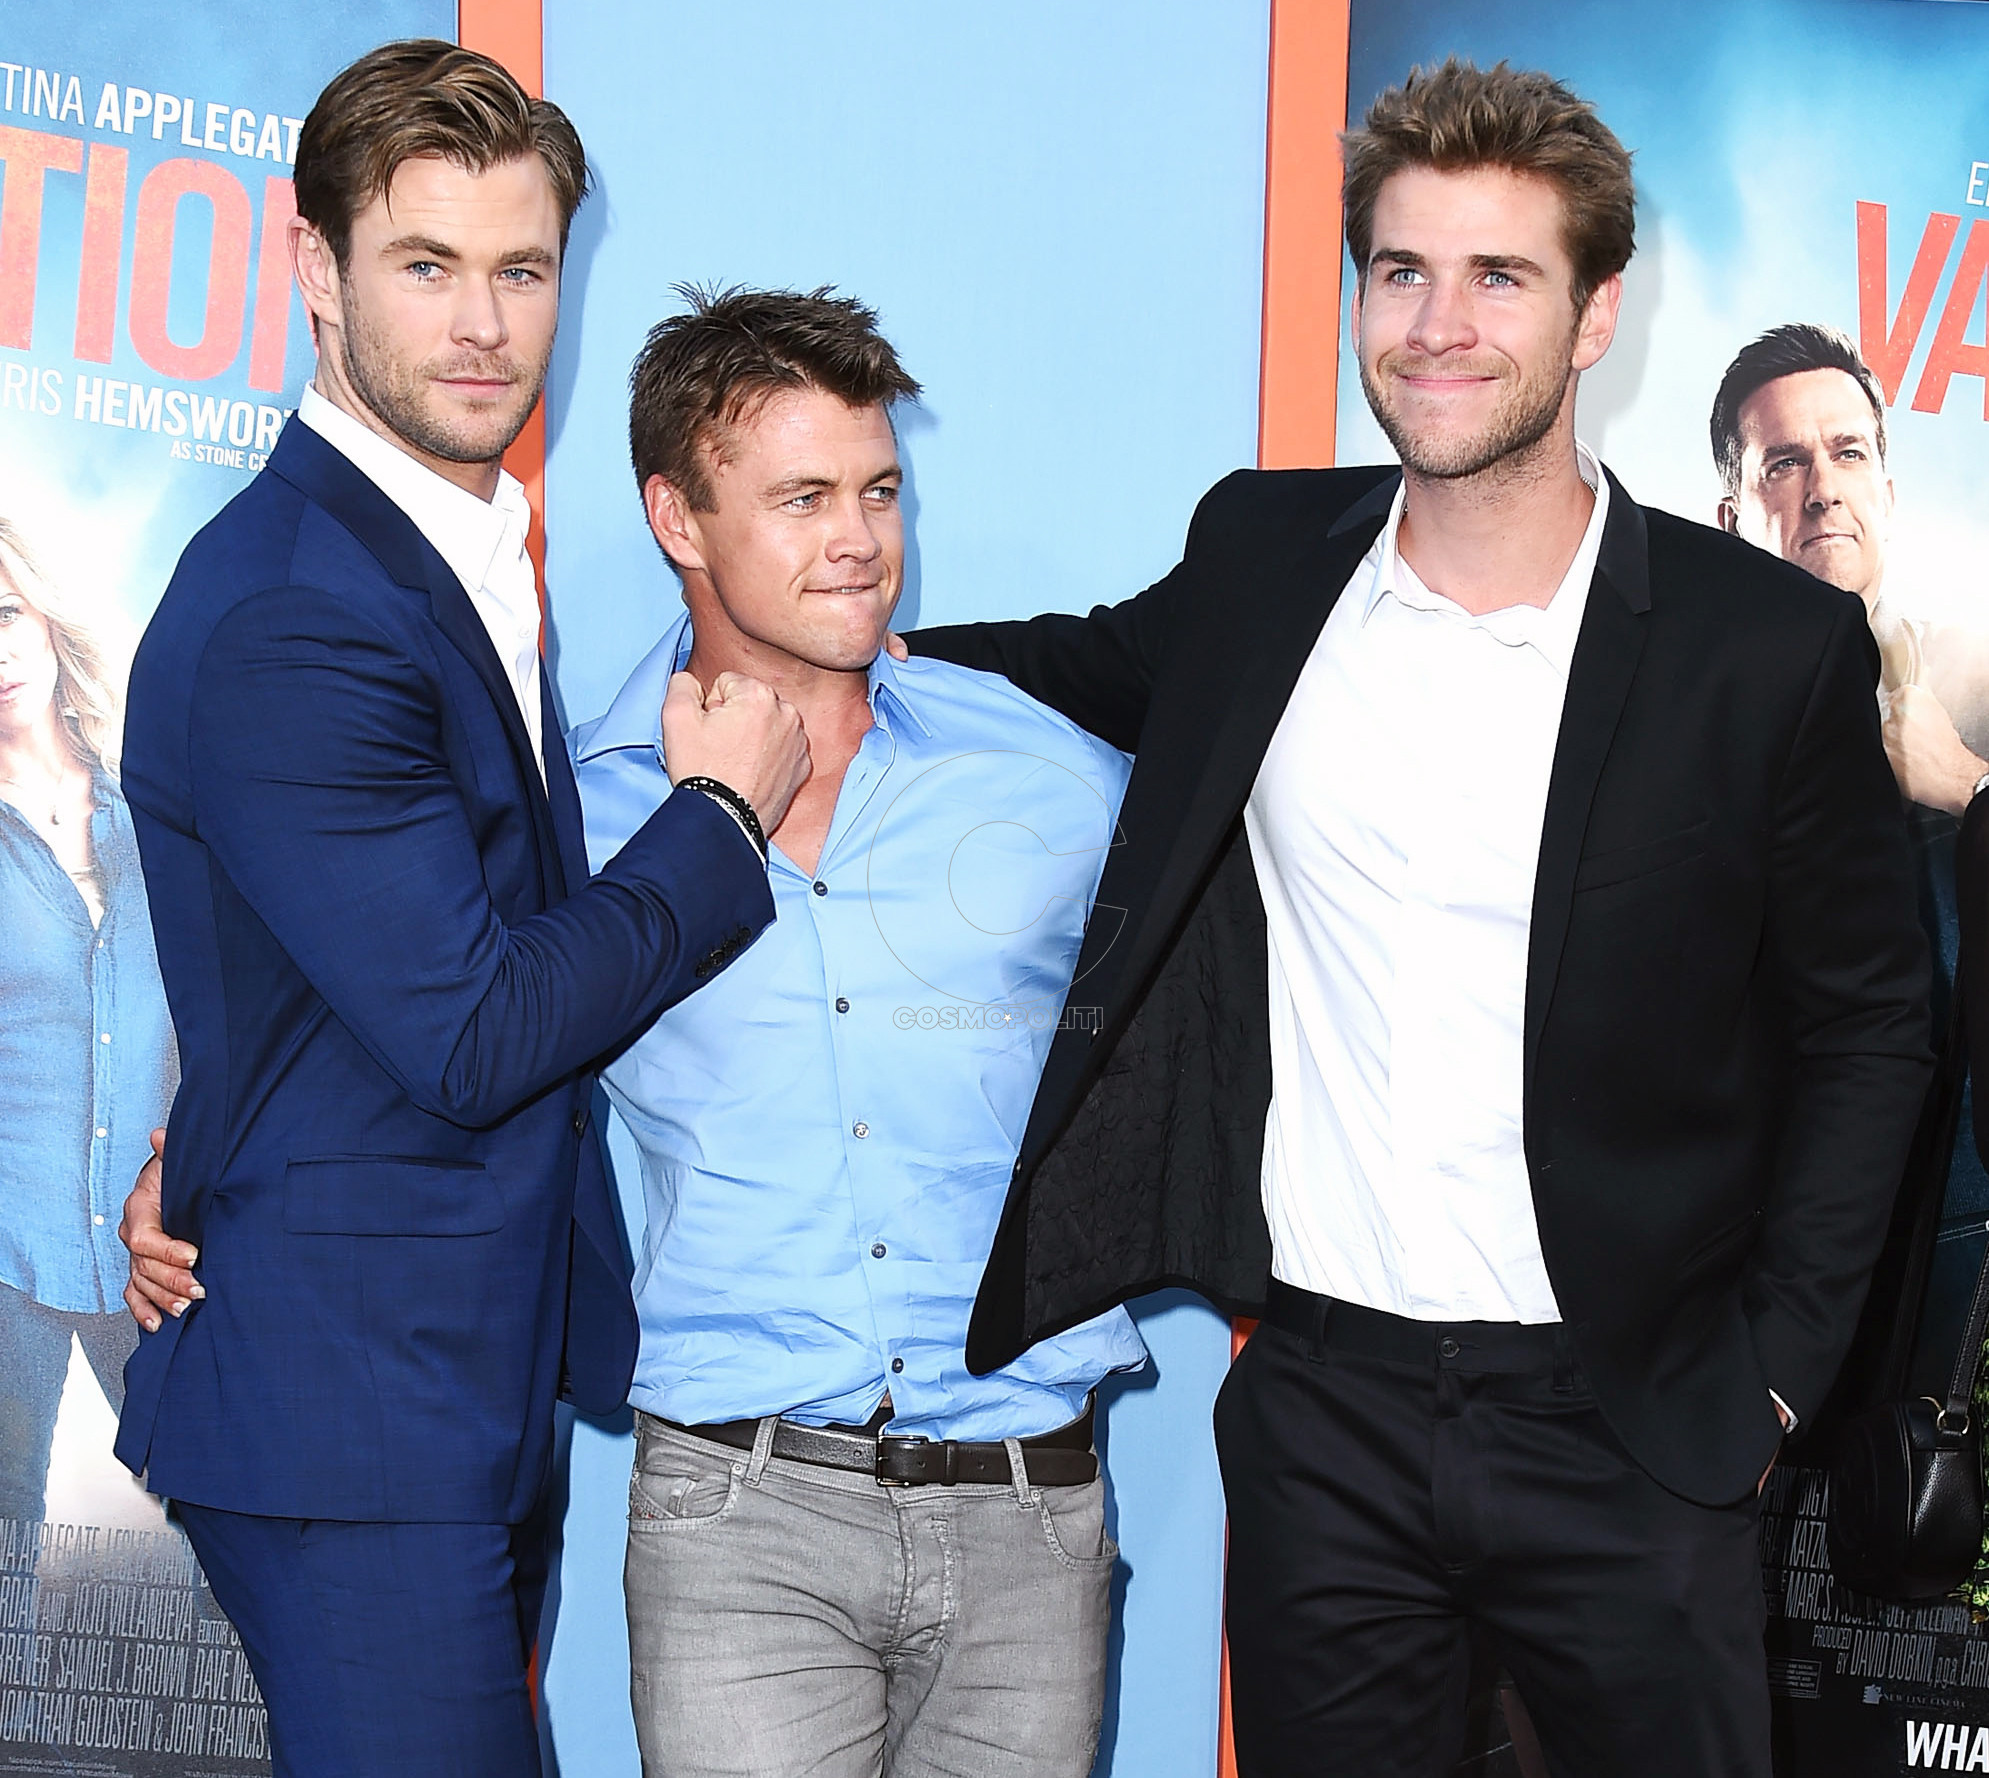 chris-hemsworth-luke-hemsworth-liam-hemsworth-zoom-ee70ffe6-6249-4a10-a678-b97dbb1f0fa0